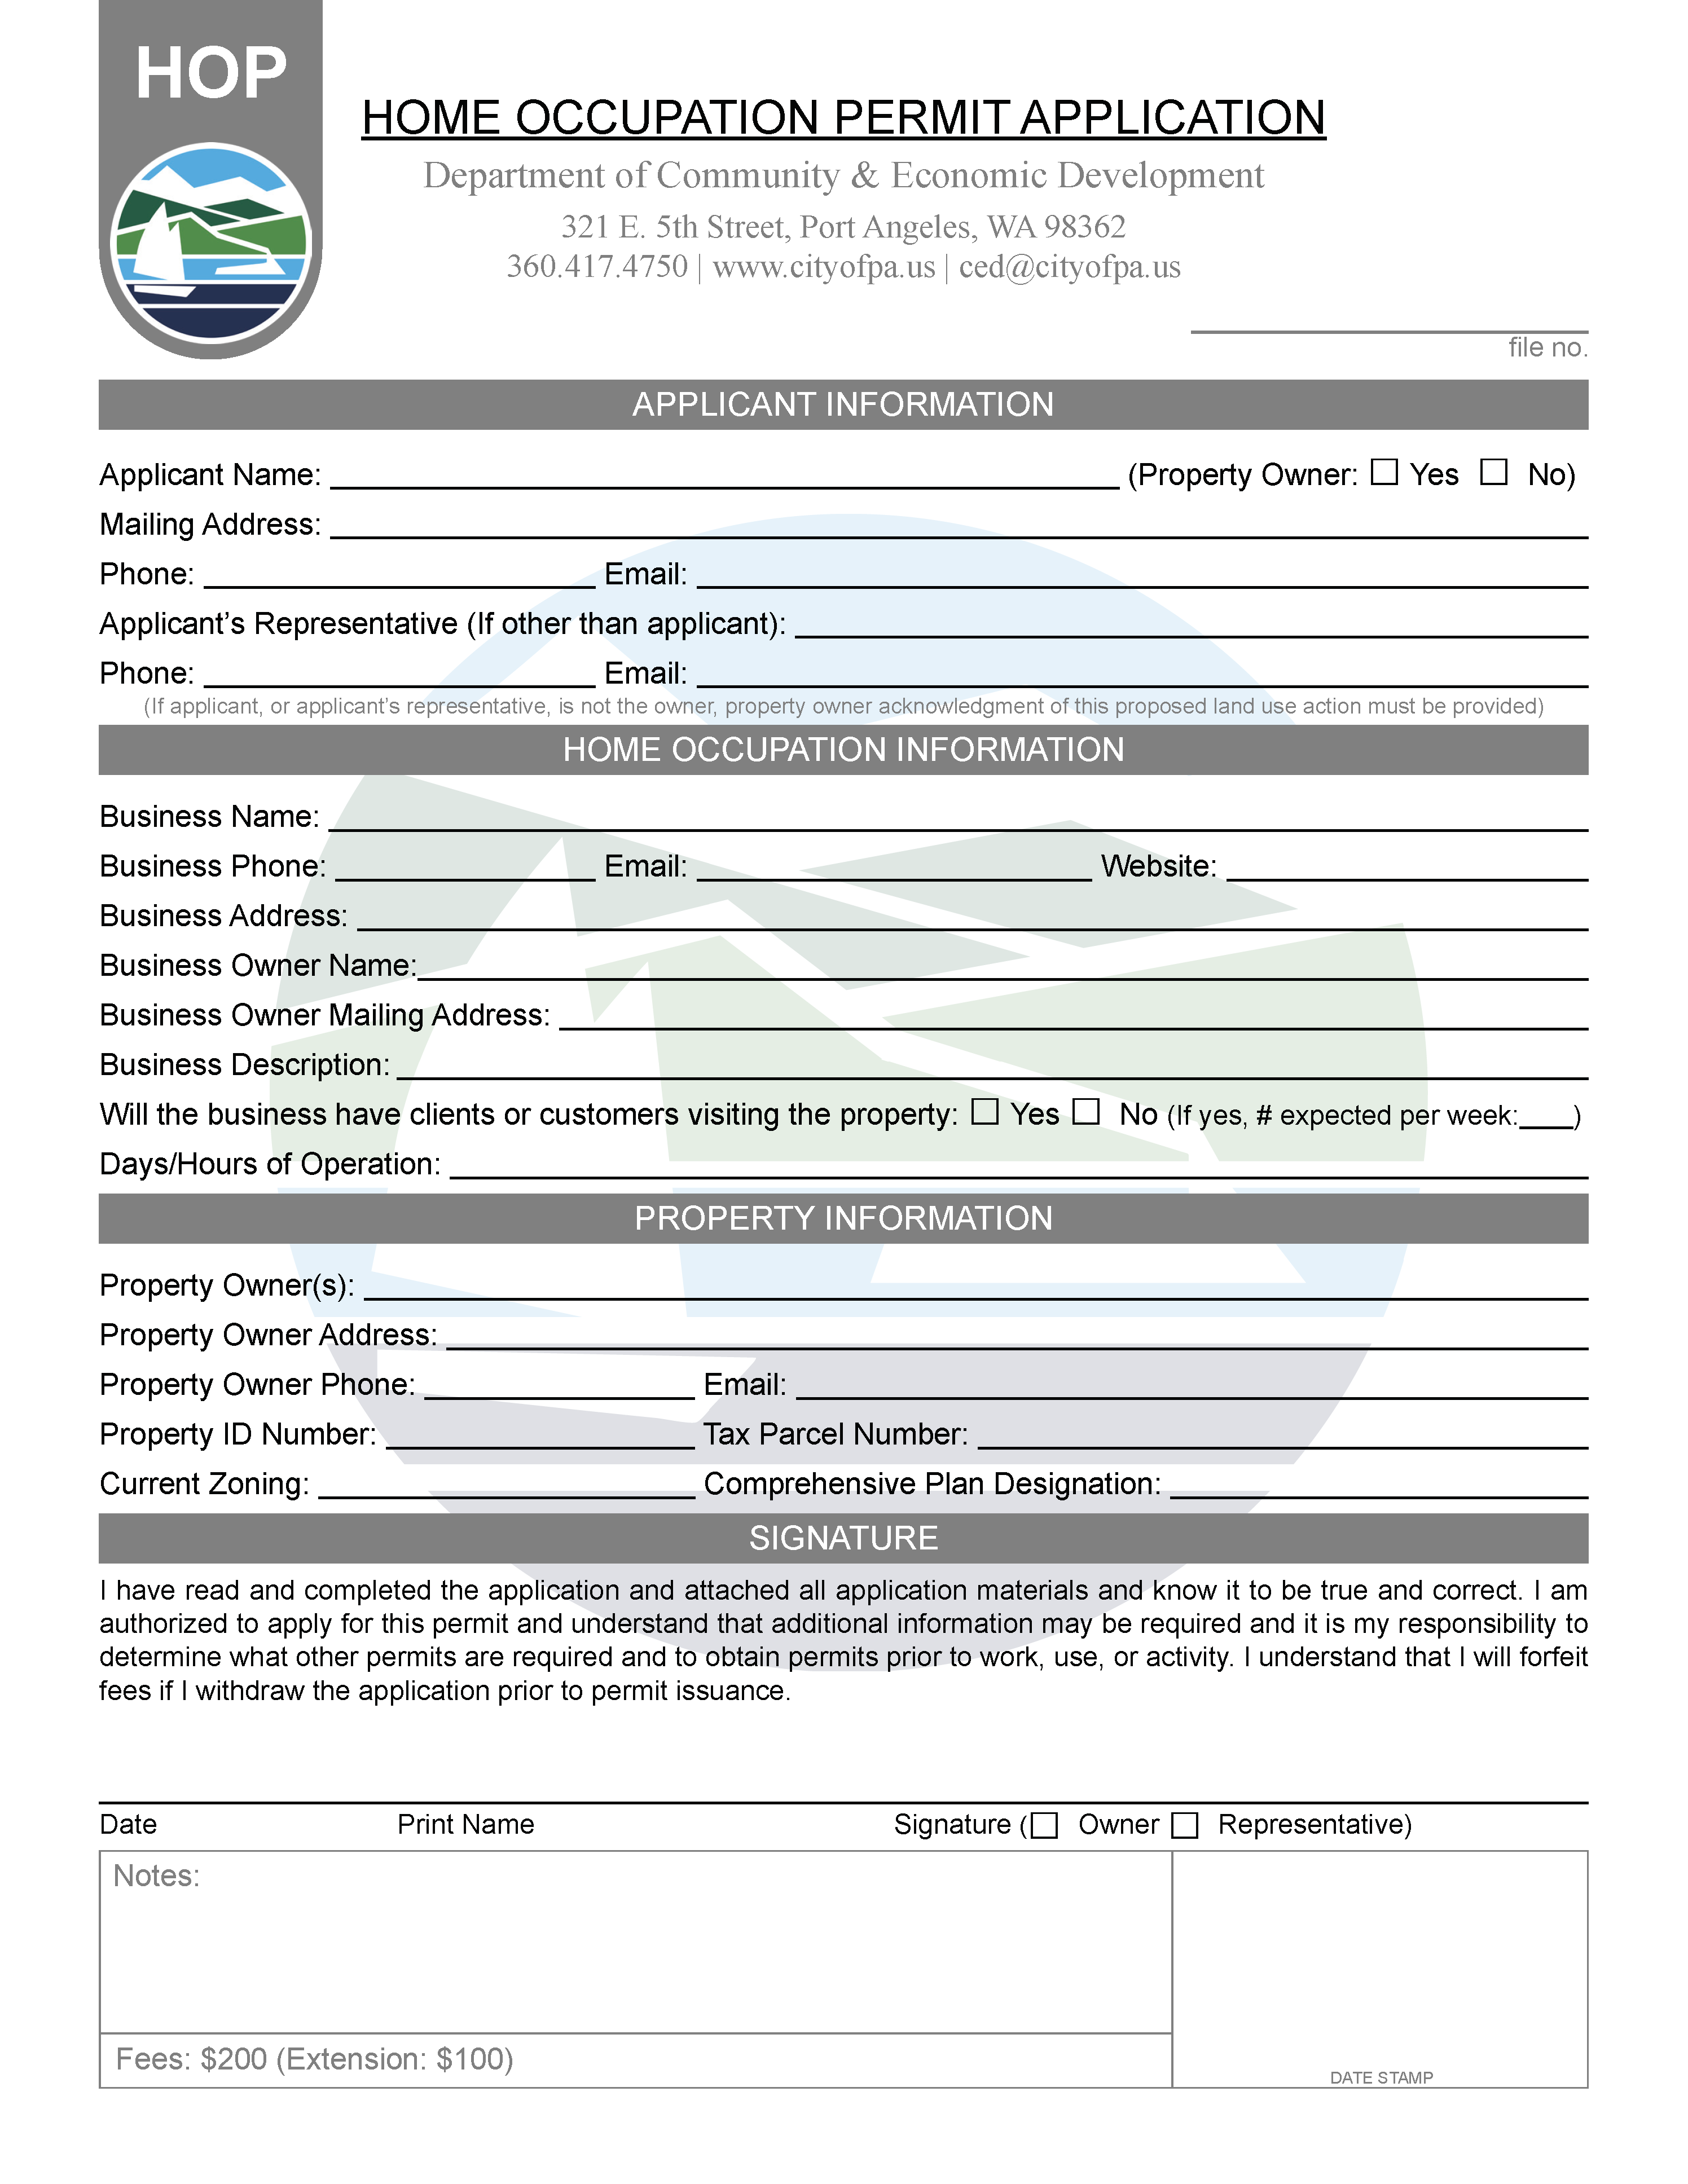 Home Occupation Permit Application